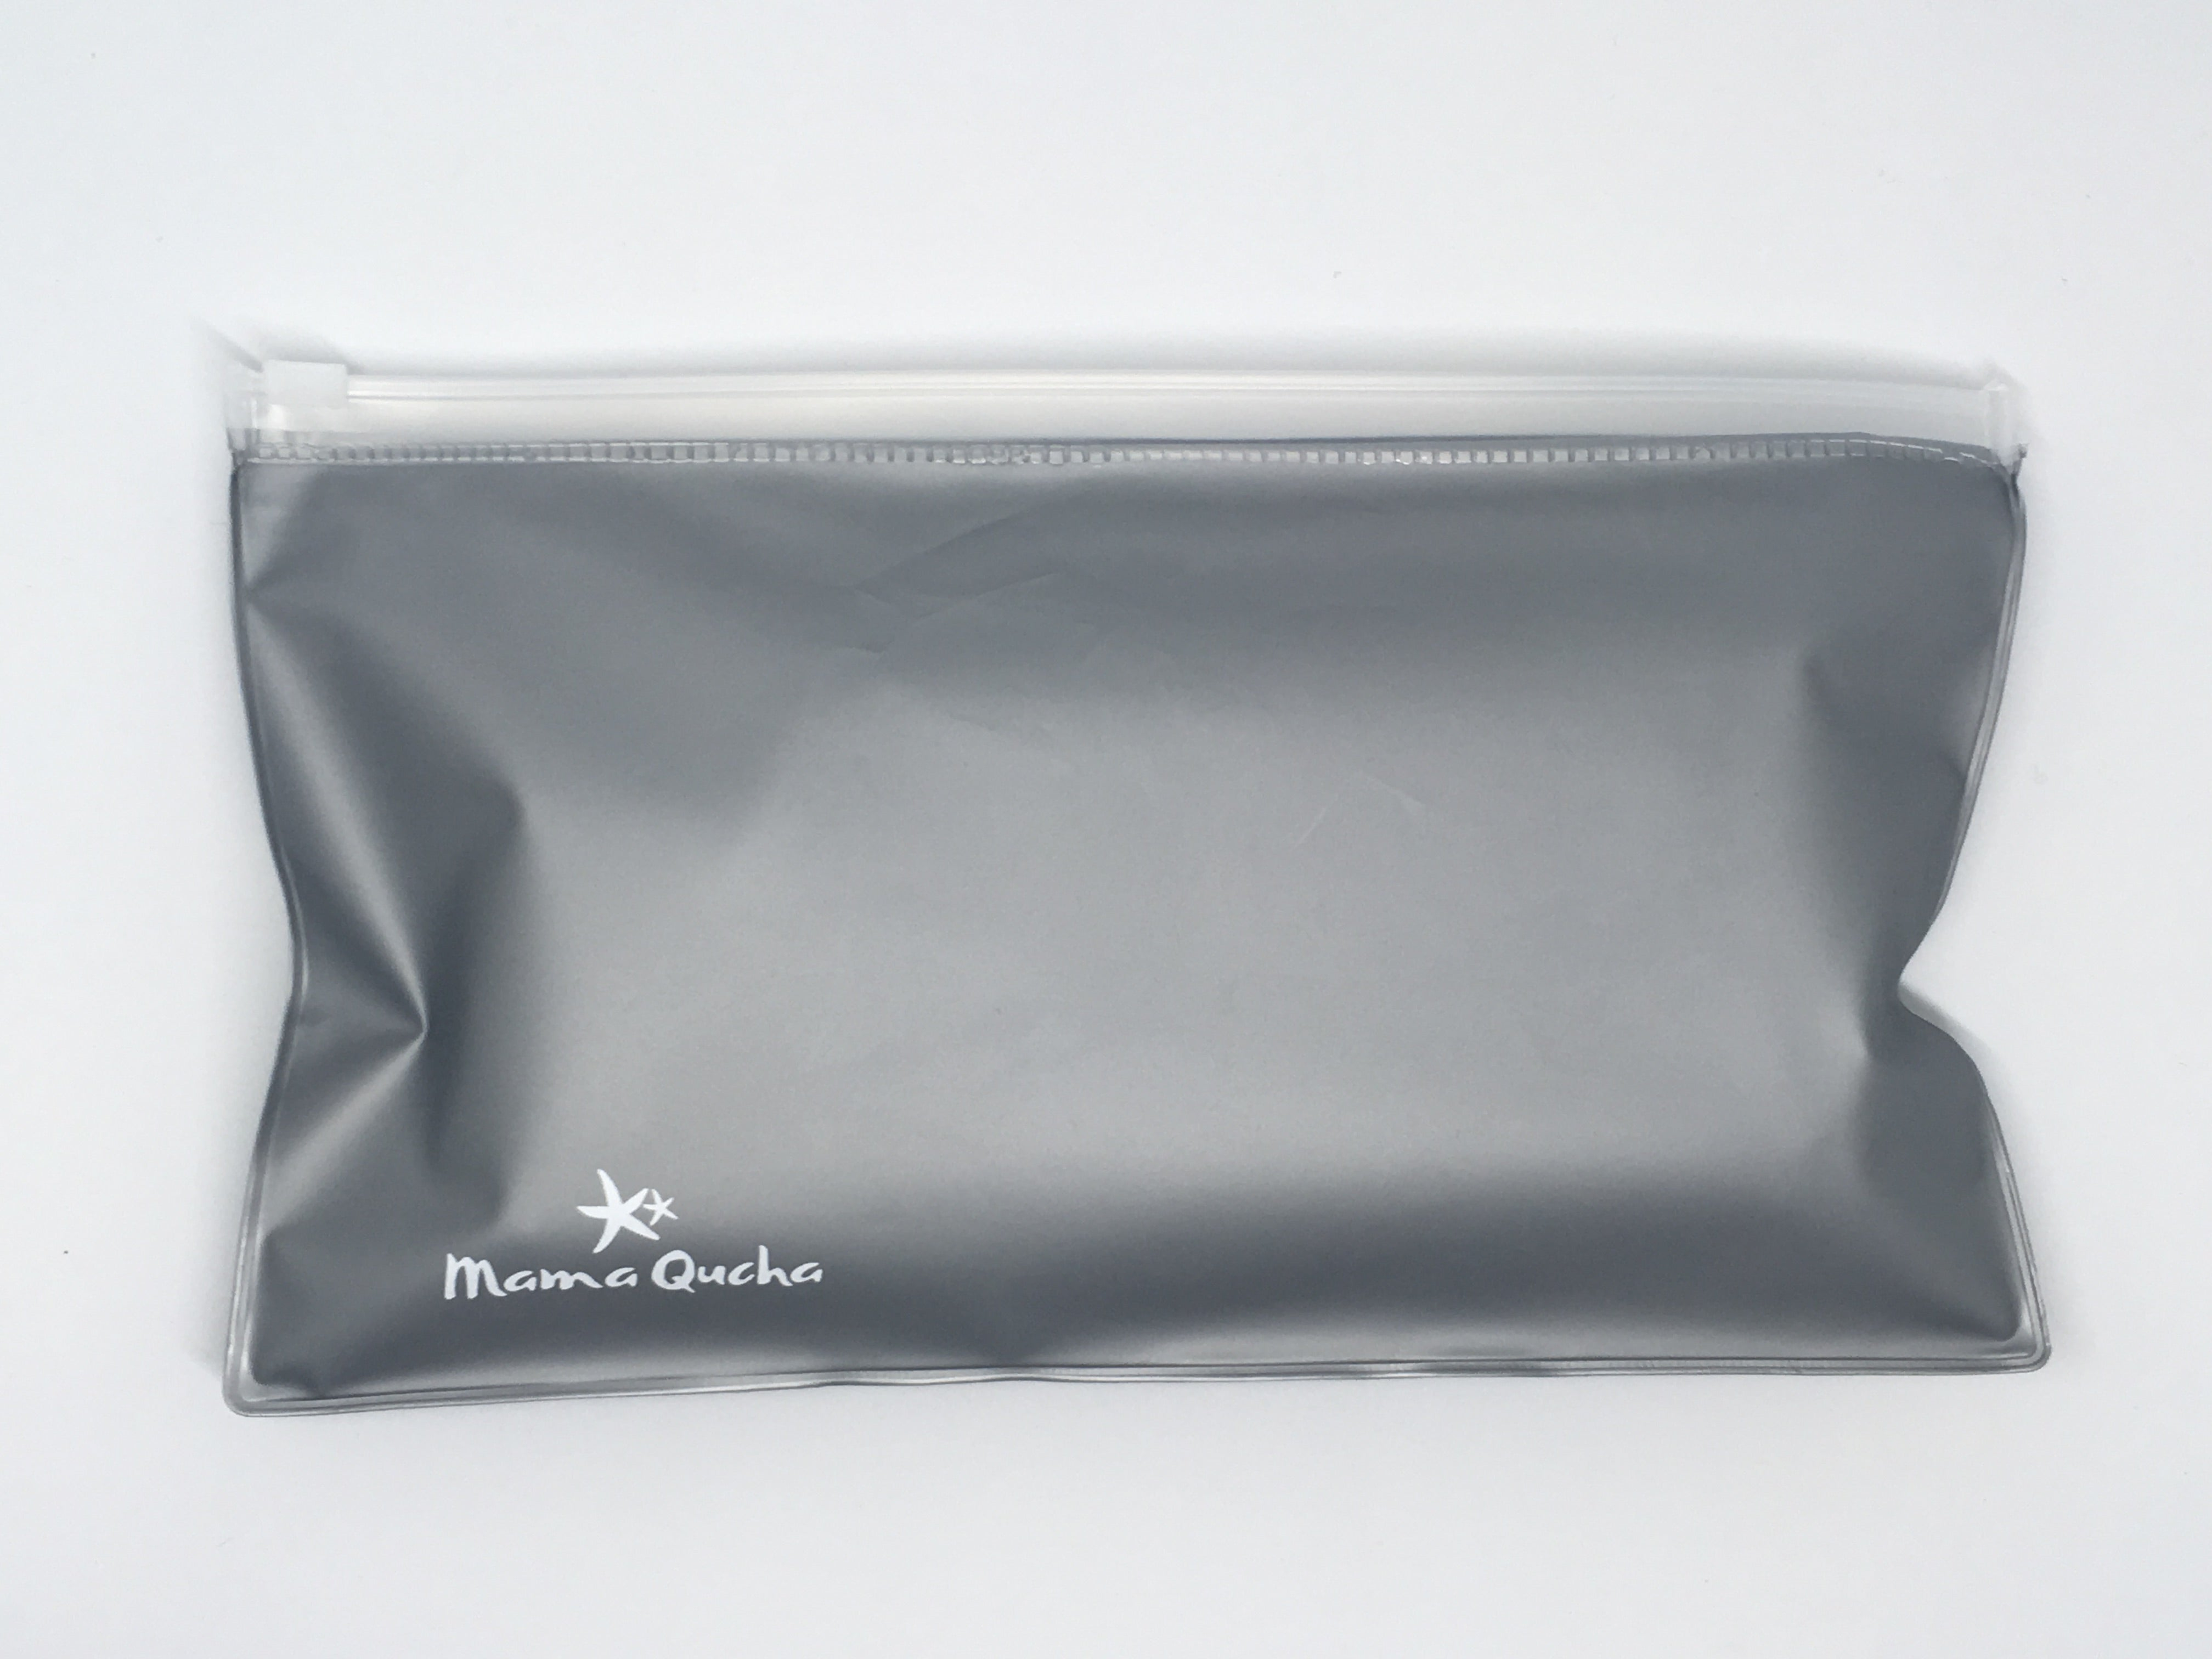 The Mama Qucha small zip lock wet bag that fits inside baby change clutch